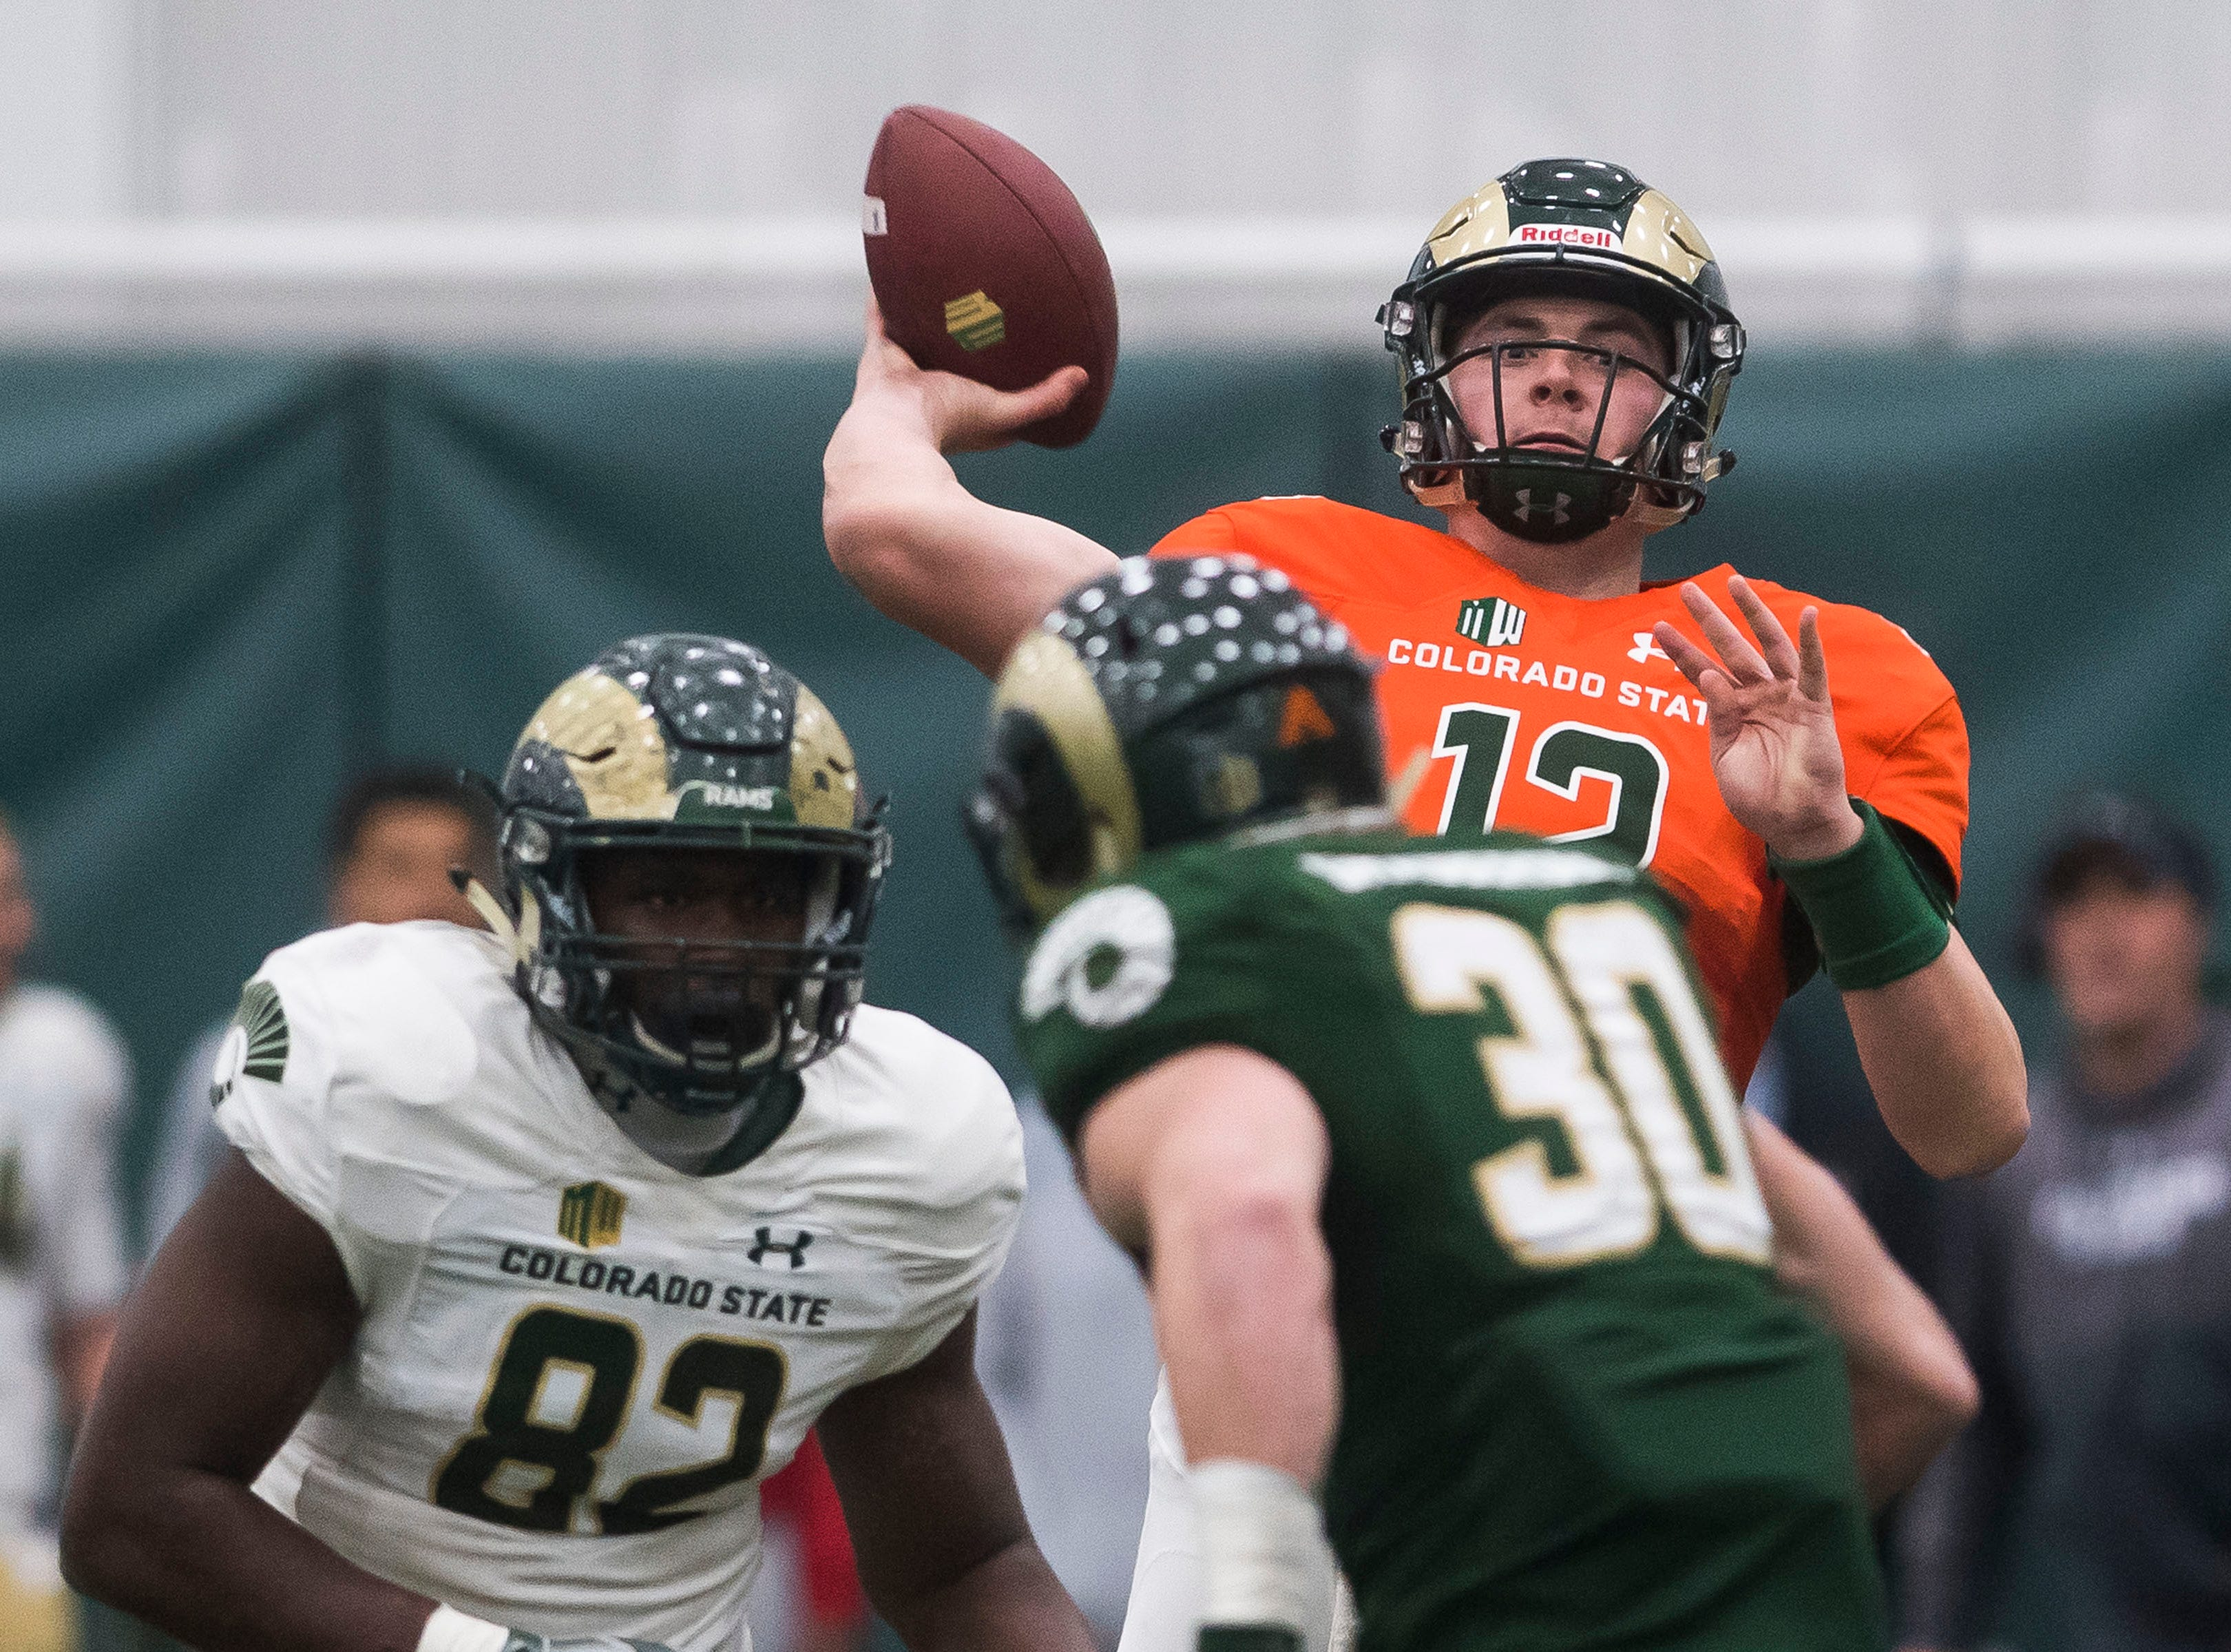 CSU junior quarterback Patrick O'Brien (12) attempts a pass during CSU's Spring game on Thursday, March 14, 2019, at their indoor practice facility in Fort Collins, Colo.